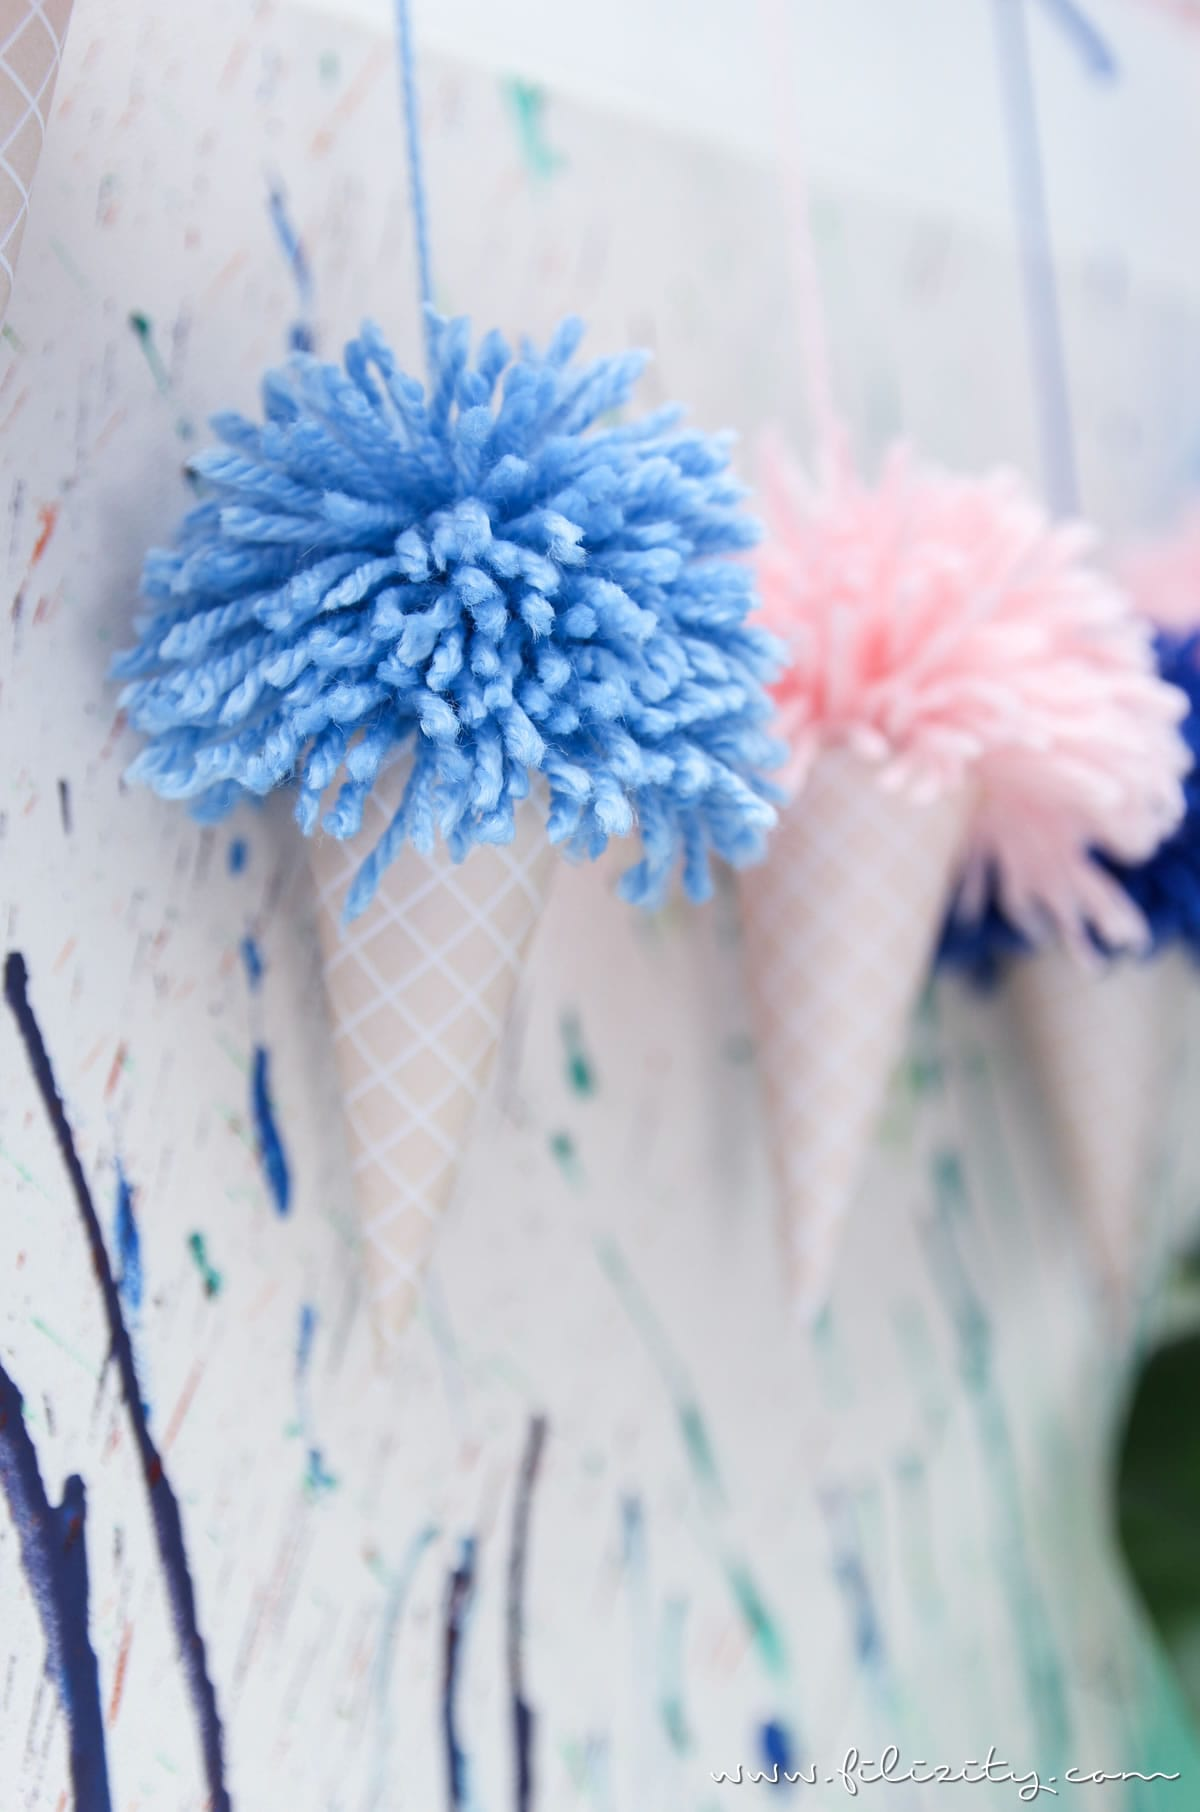 Sommer-Party: Eis-Girlande mit Pom Pons - DIY Party Deko